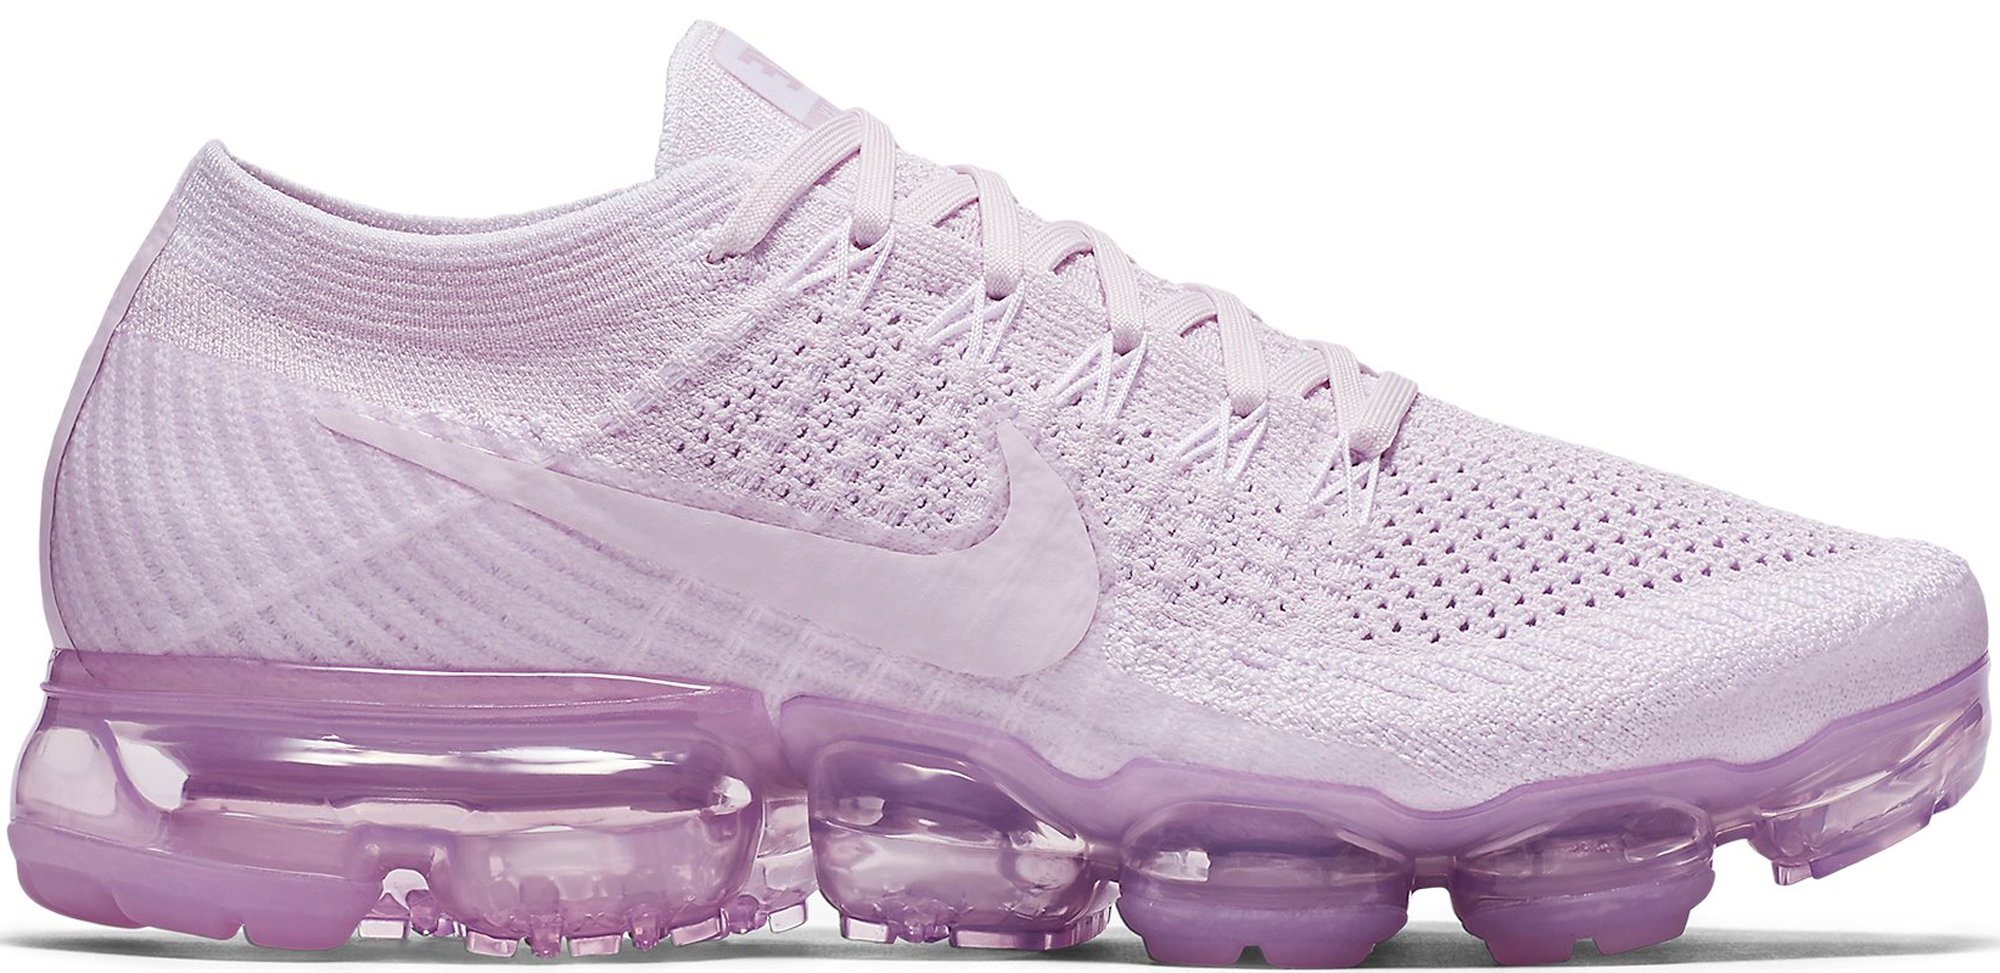 more photos 77cf3 70cf9 Women's Nike Air Vapor Max Light Violet - StockX News